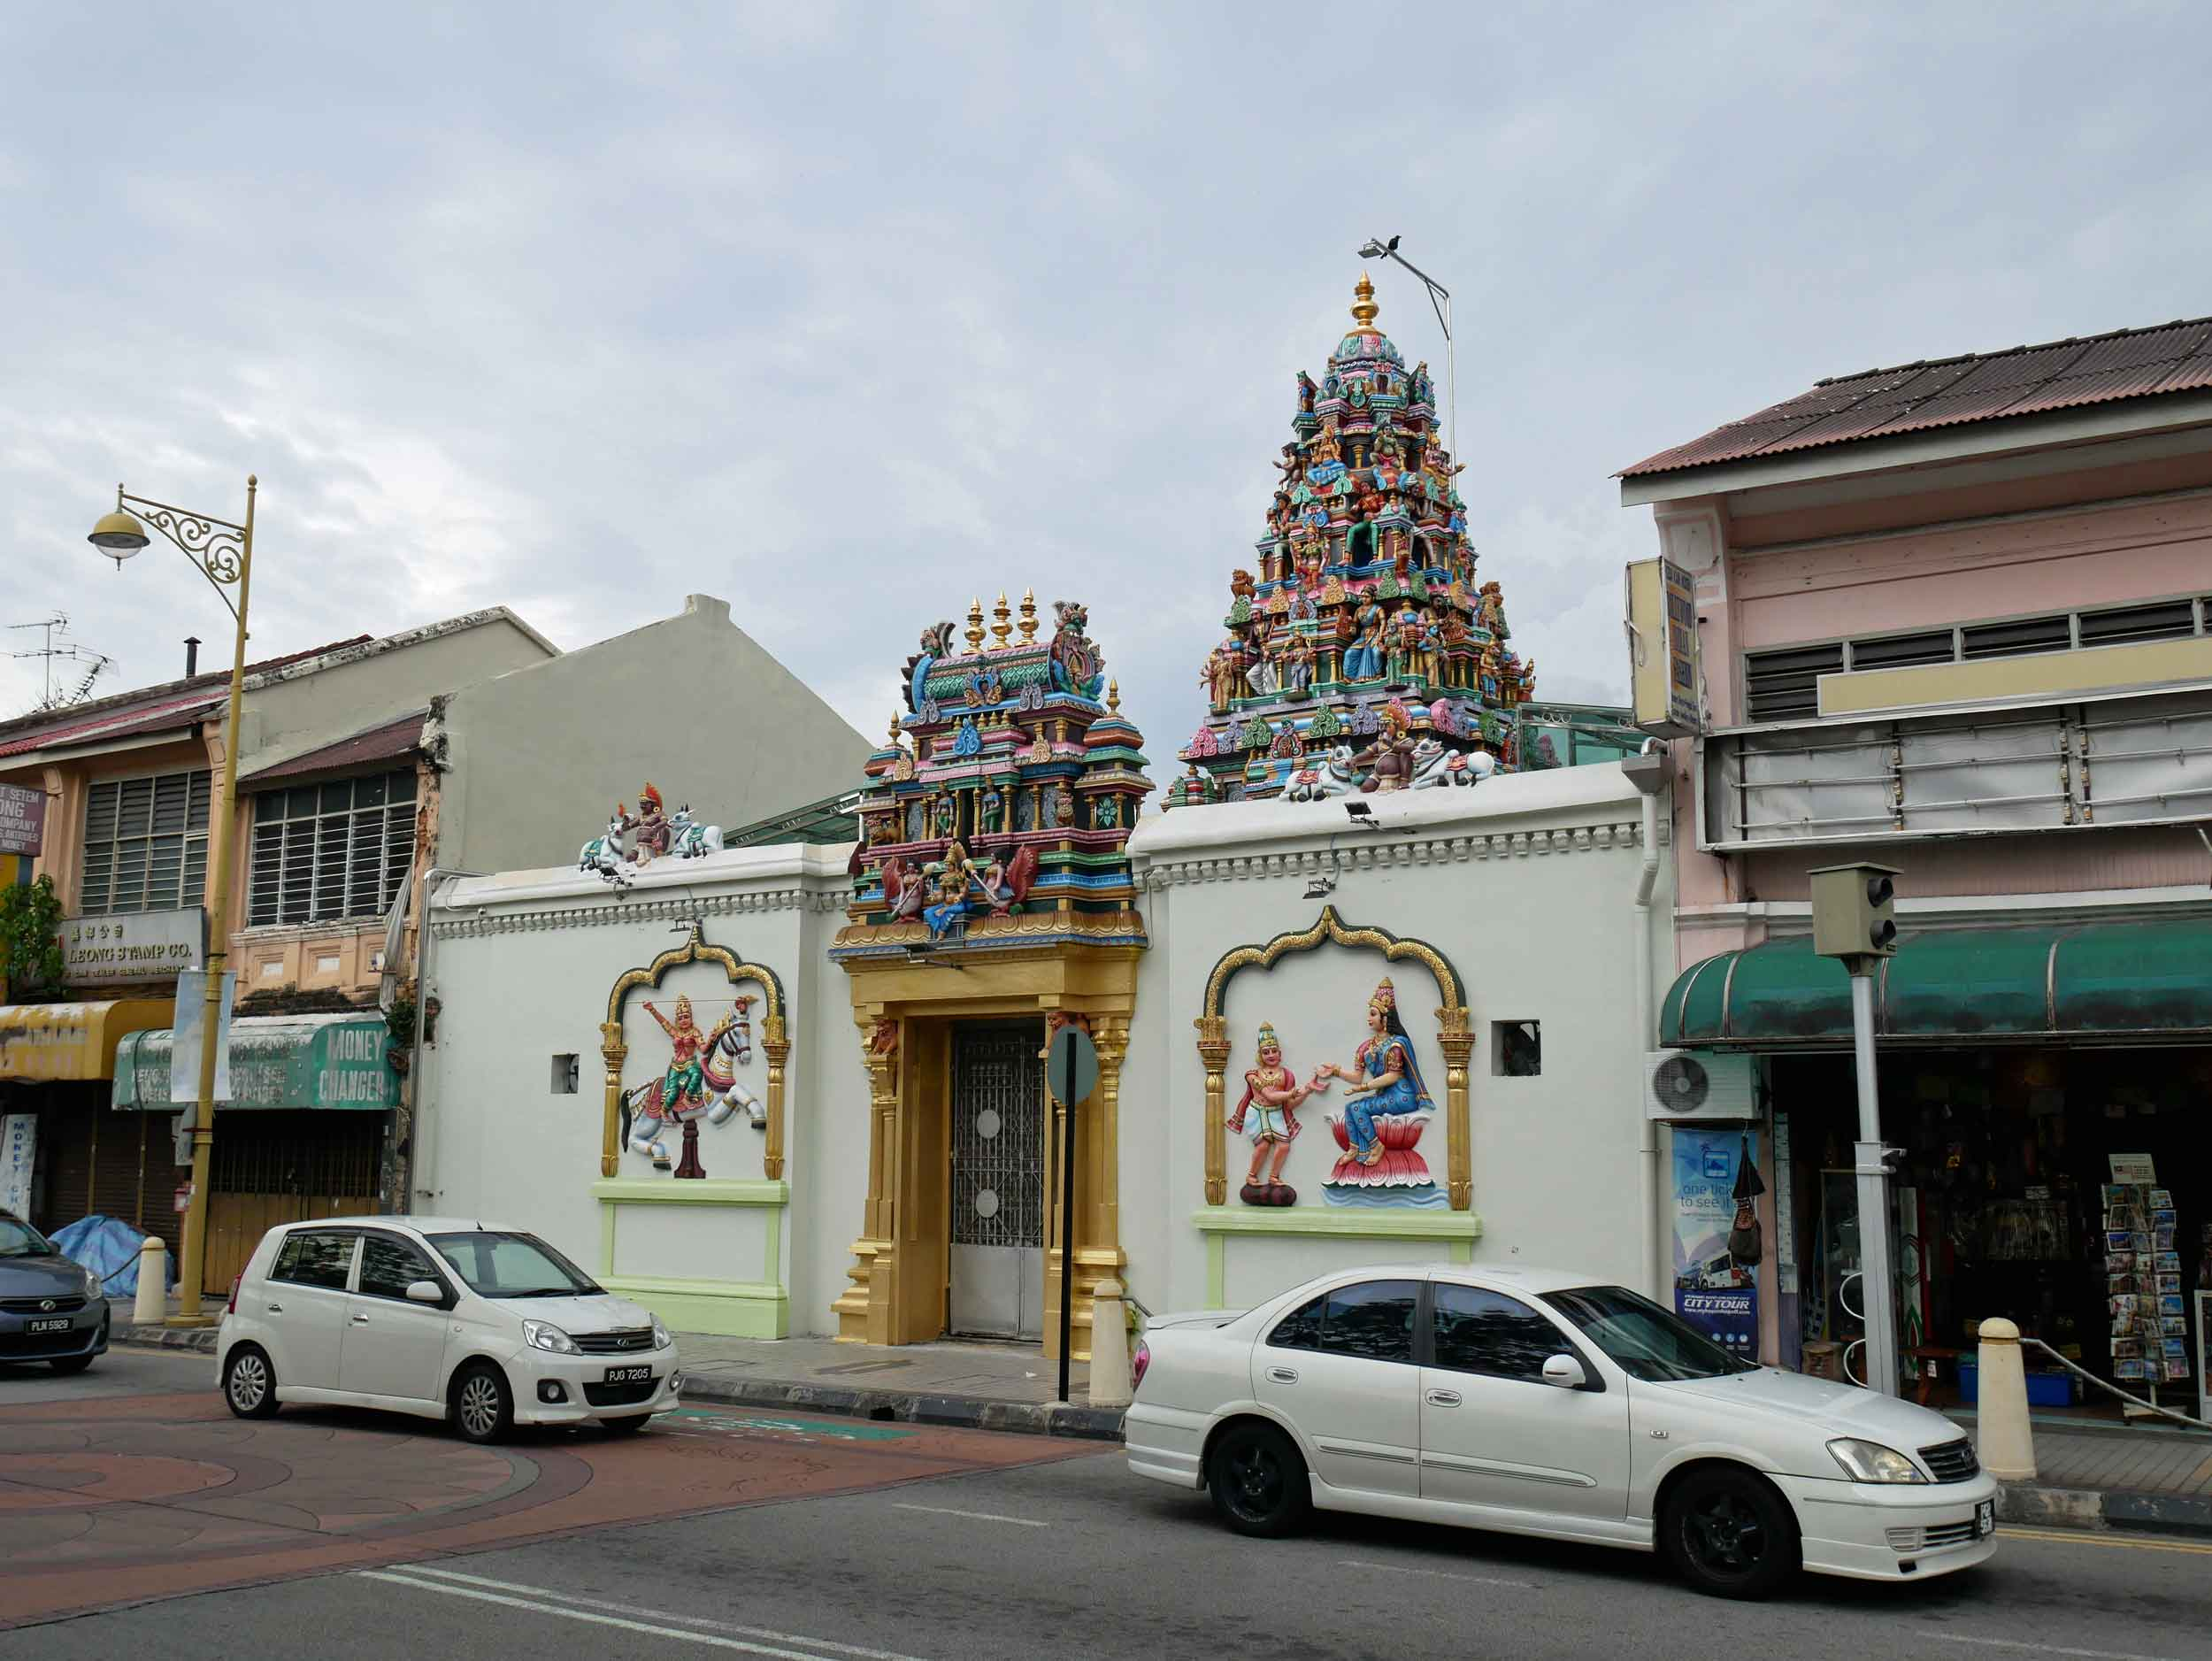 Sri Mahamariamman Temple,known locally as Queen Street Indian Temple, was also built in the 1800s and anchors the area's Little India.